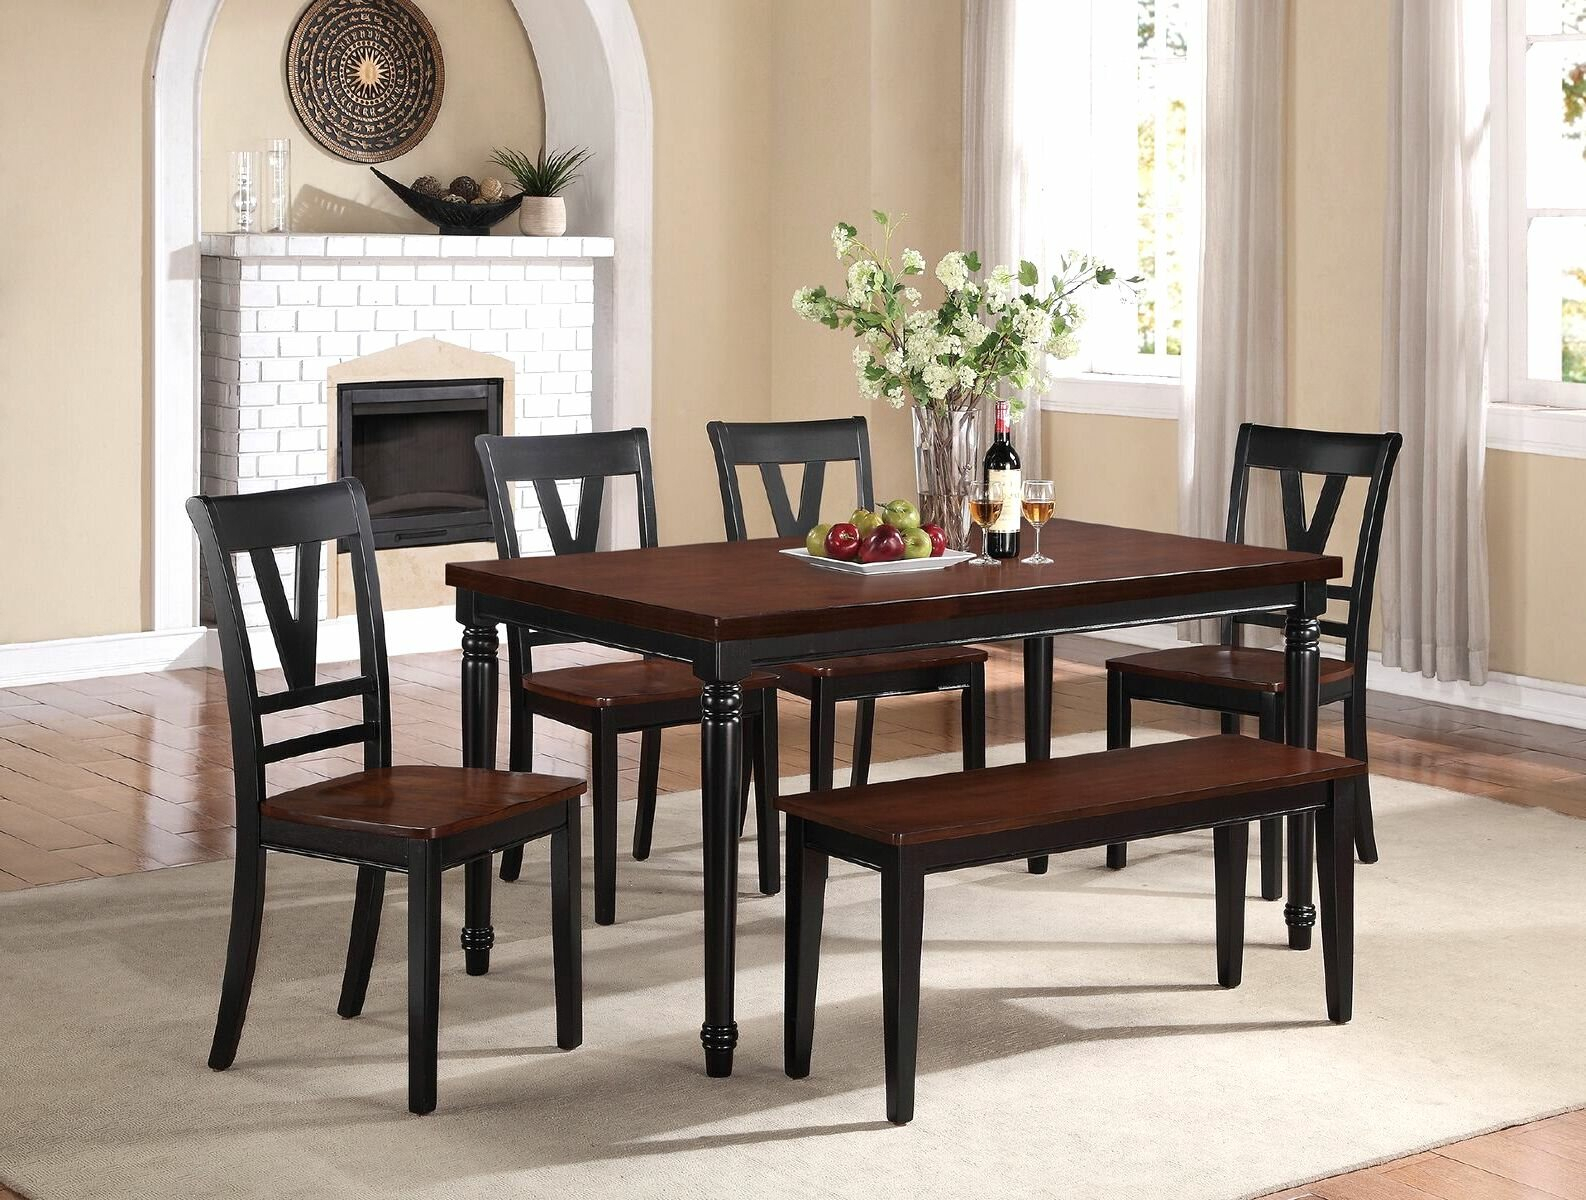 Canora Grey Stephenson 6 Piece Dining Set (View 1 of 20)